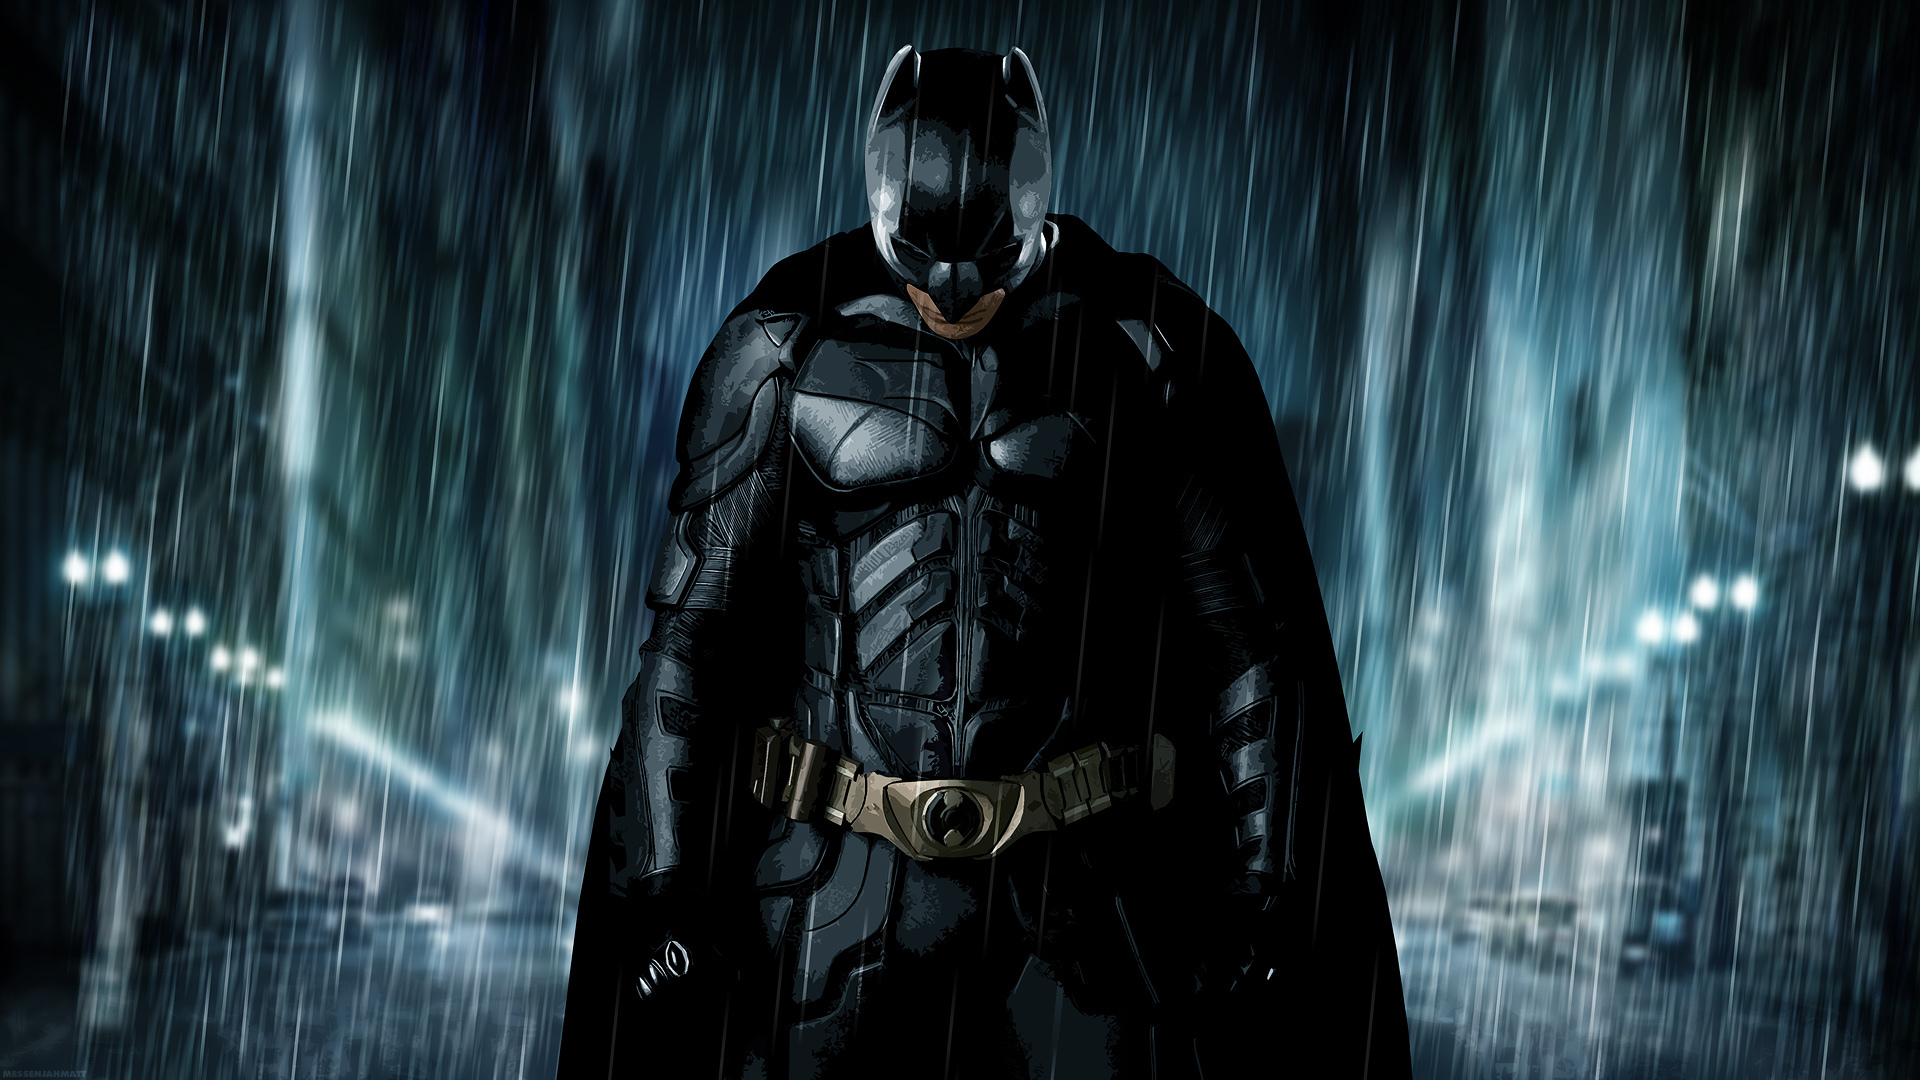 Hd Wallpapers Of The Movie The Dark Knight